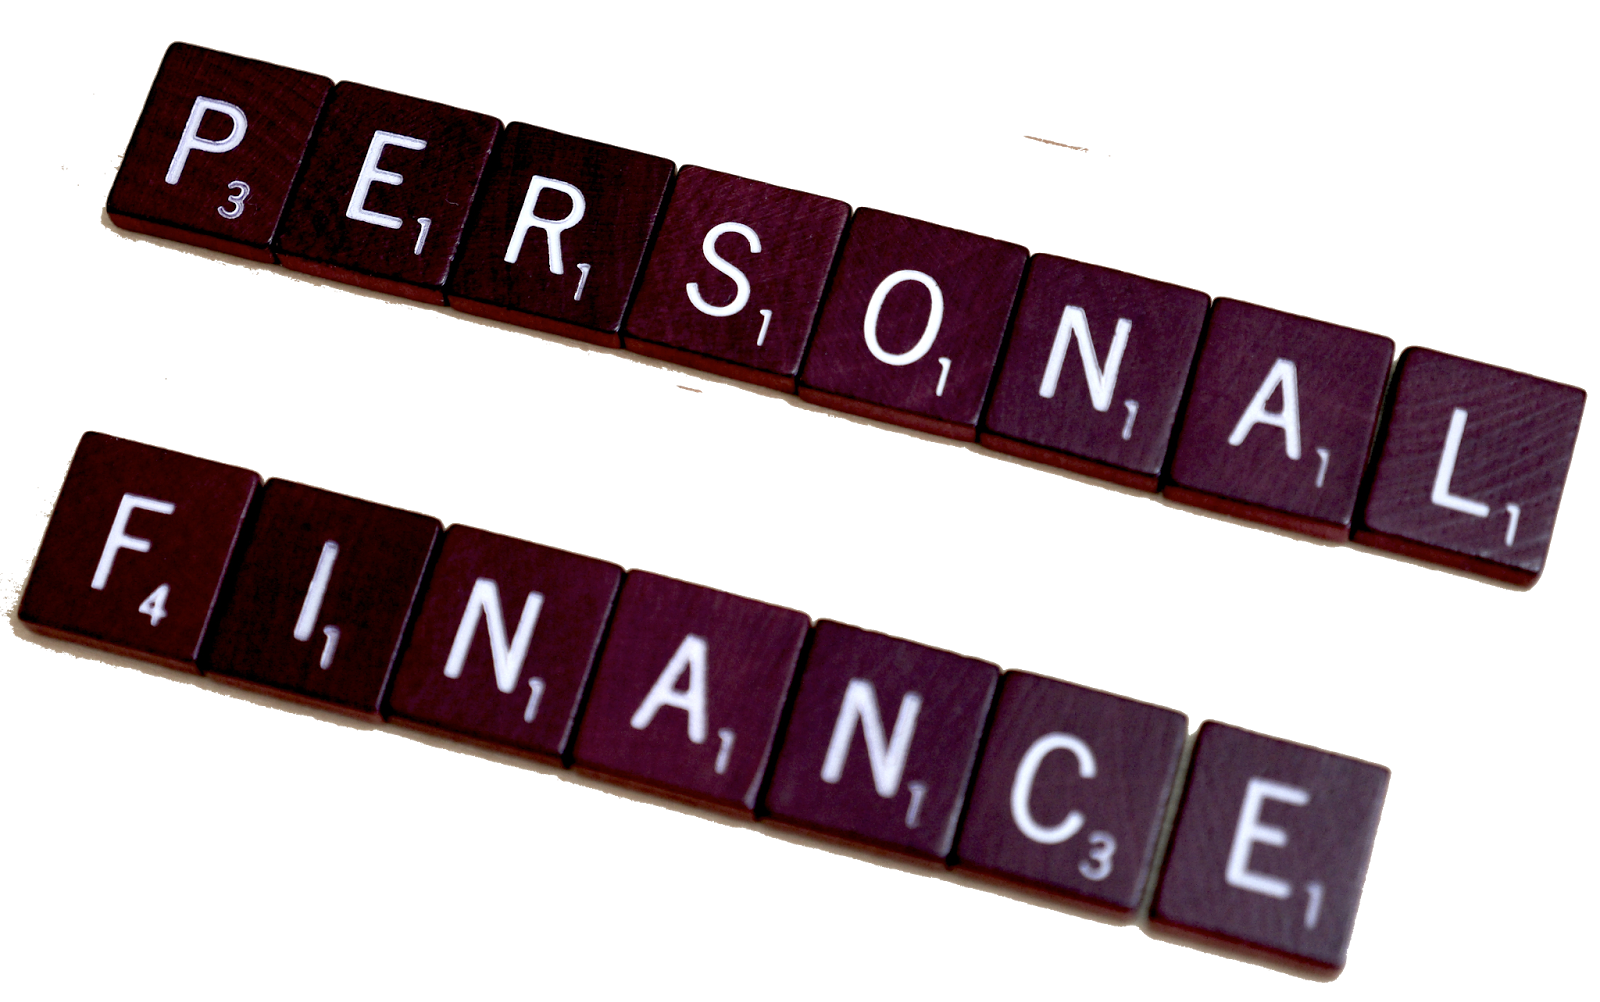 Debt management, budgeting and investing are all important in personal finance